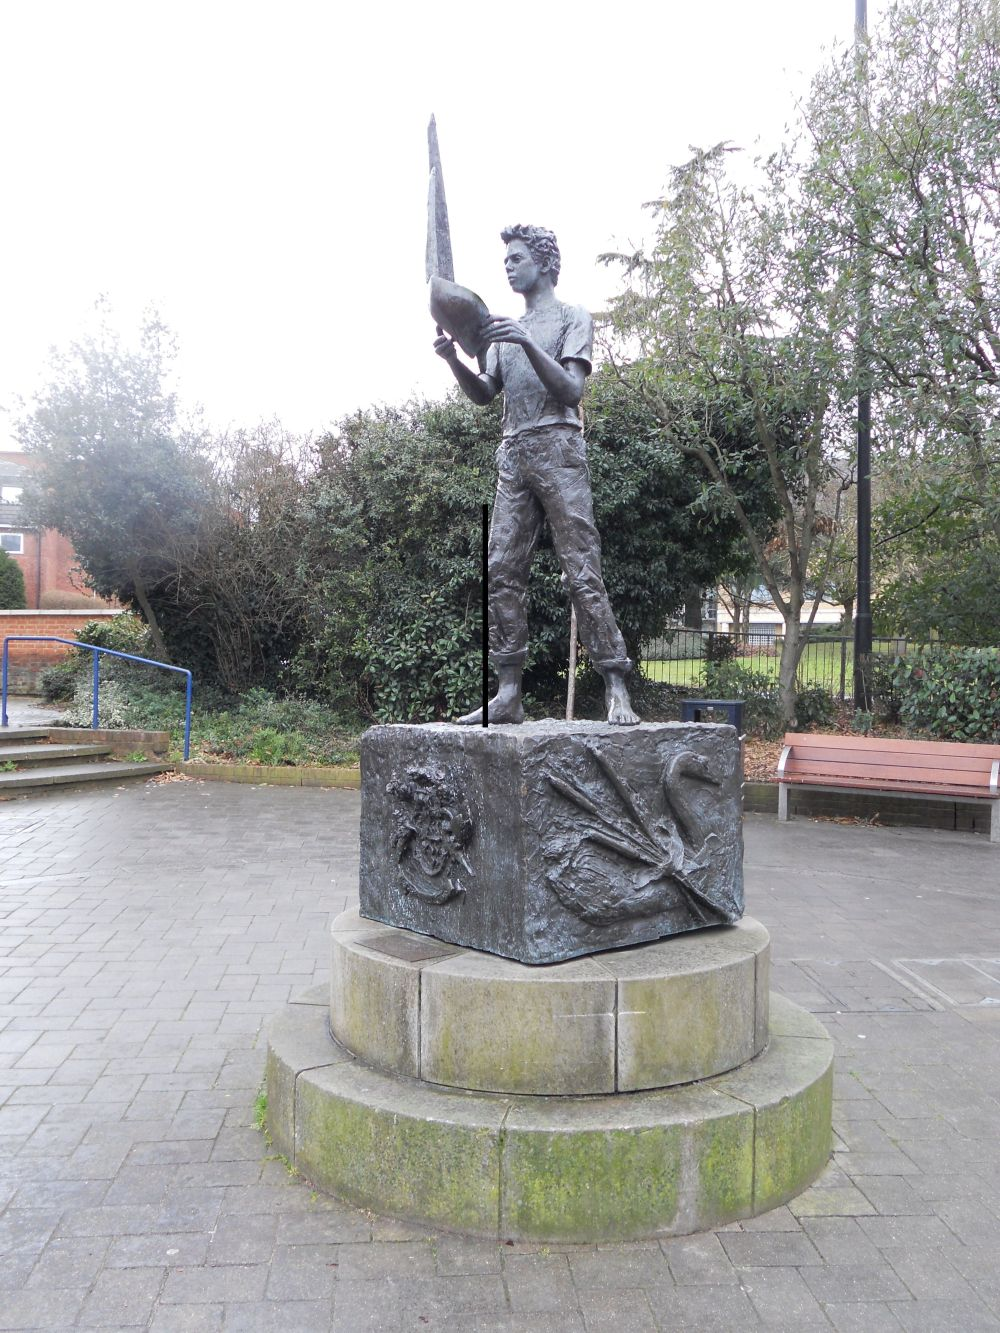 The Boy and the Boat statue